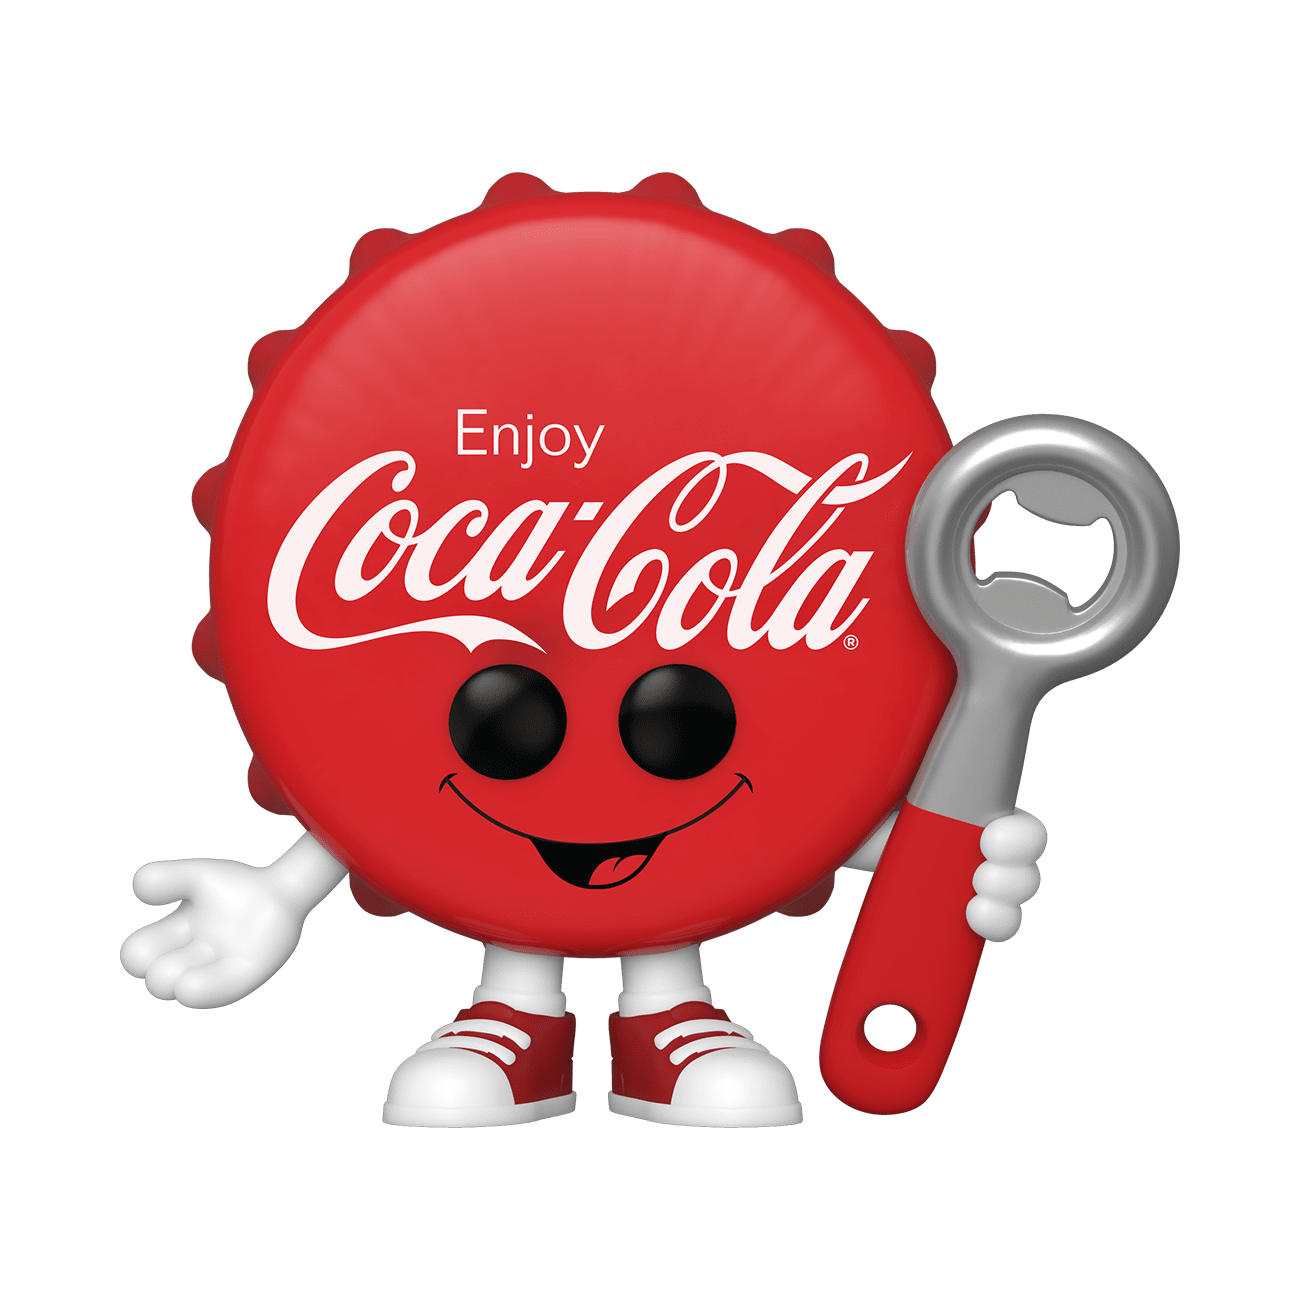 ad icons coca cola bottle cap funko